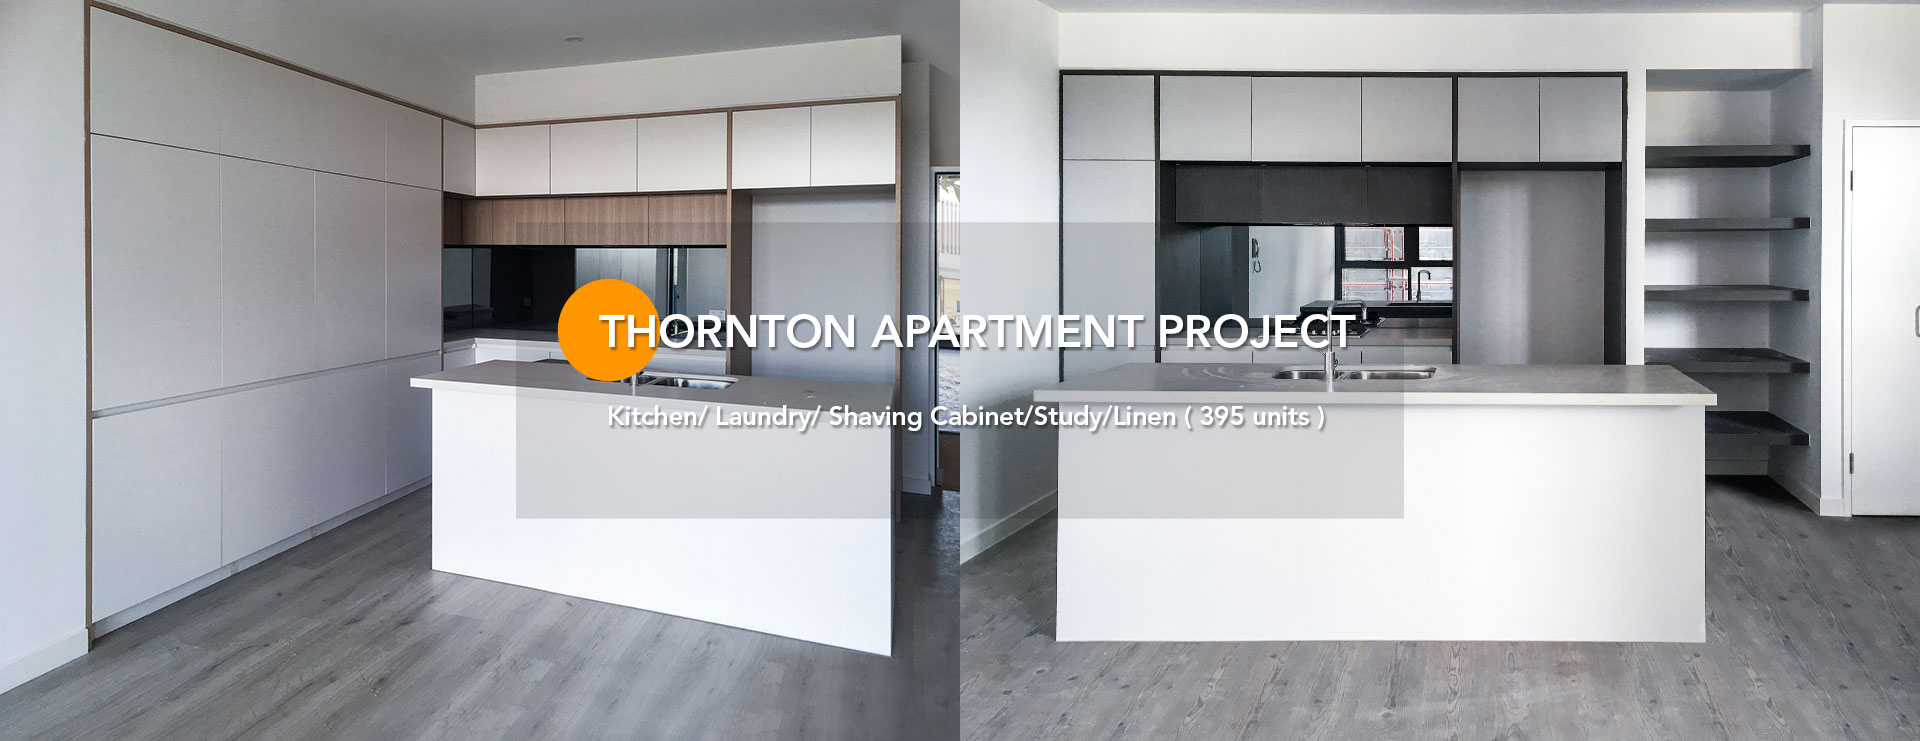 Thornton-Apartment- Project-STH (1)